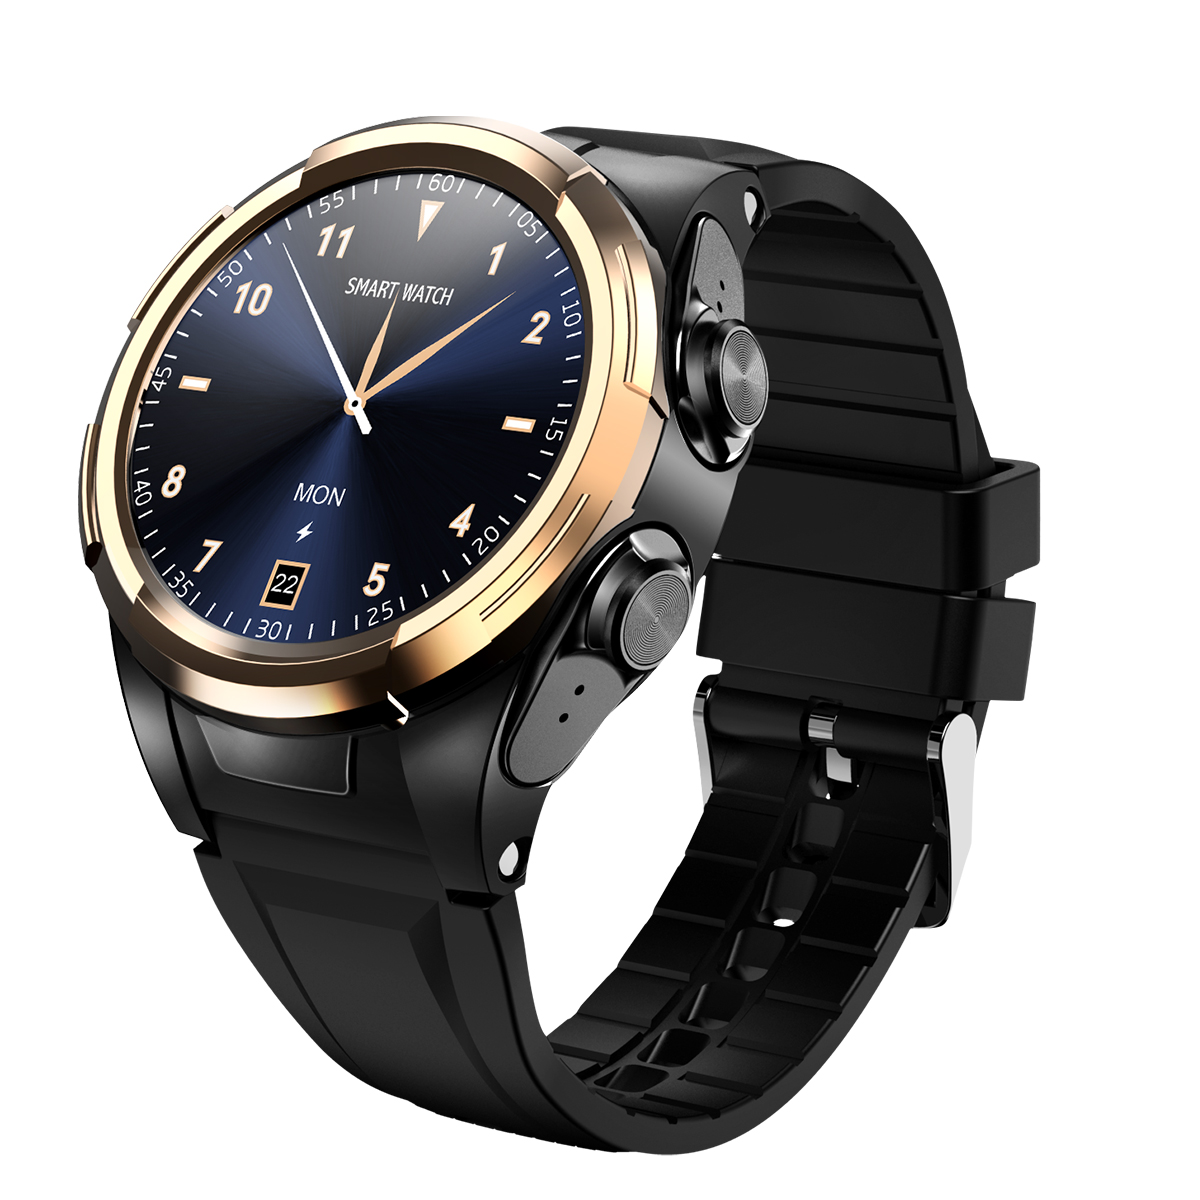 Metal S201 Smart Watch Men Bluetooth Thermometer Full Touch Screen Sports Smartwatch Smart Wristband black gold